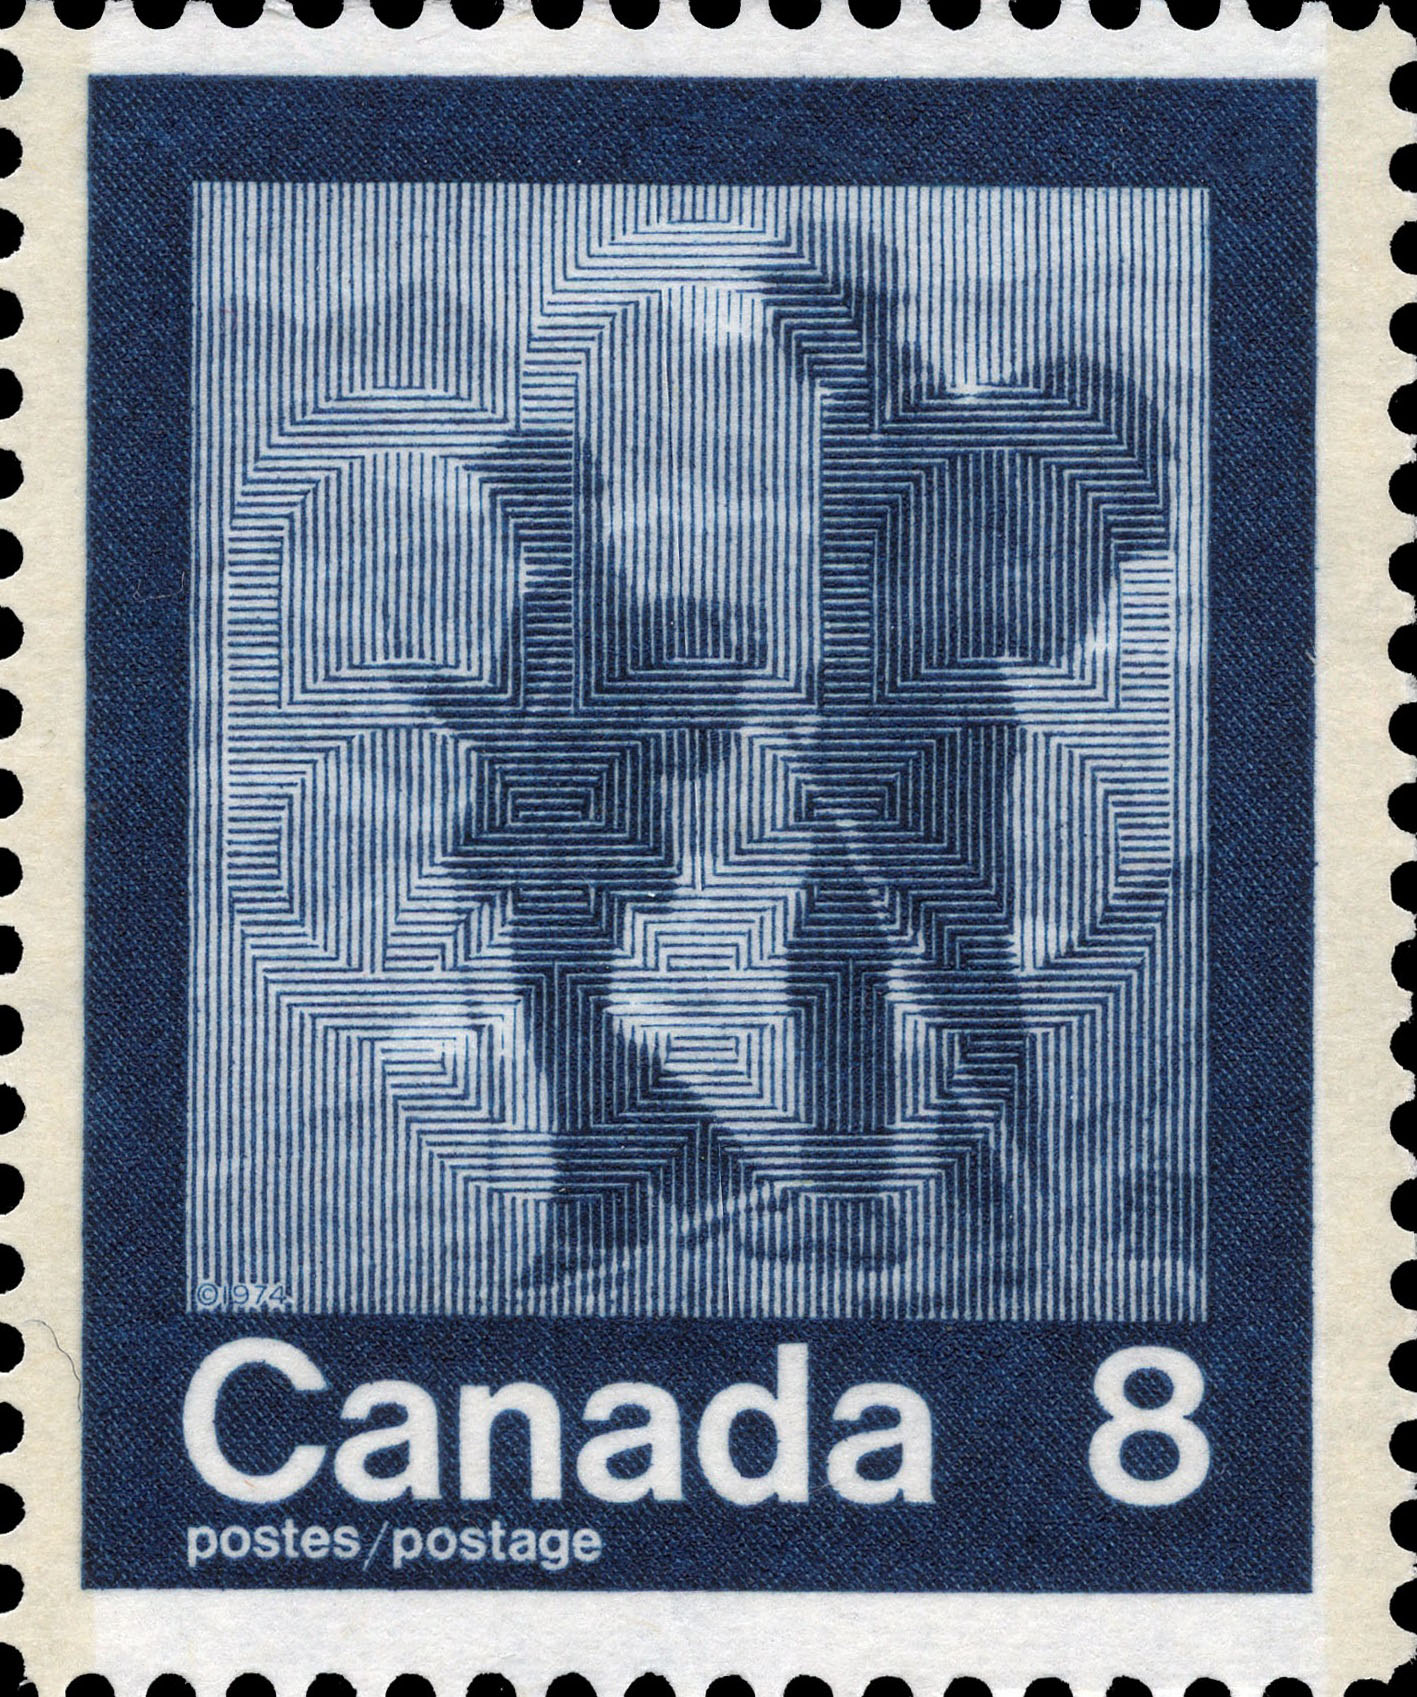 Hiking Canada Postage Stamp